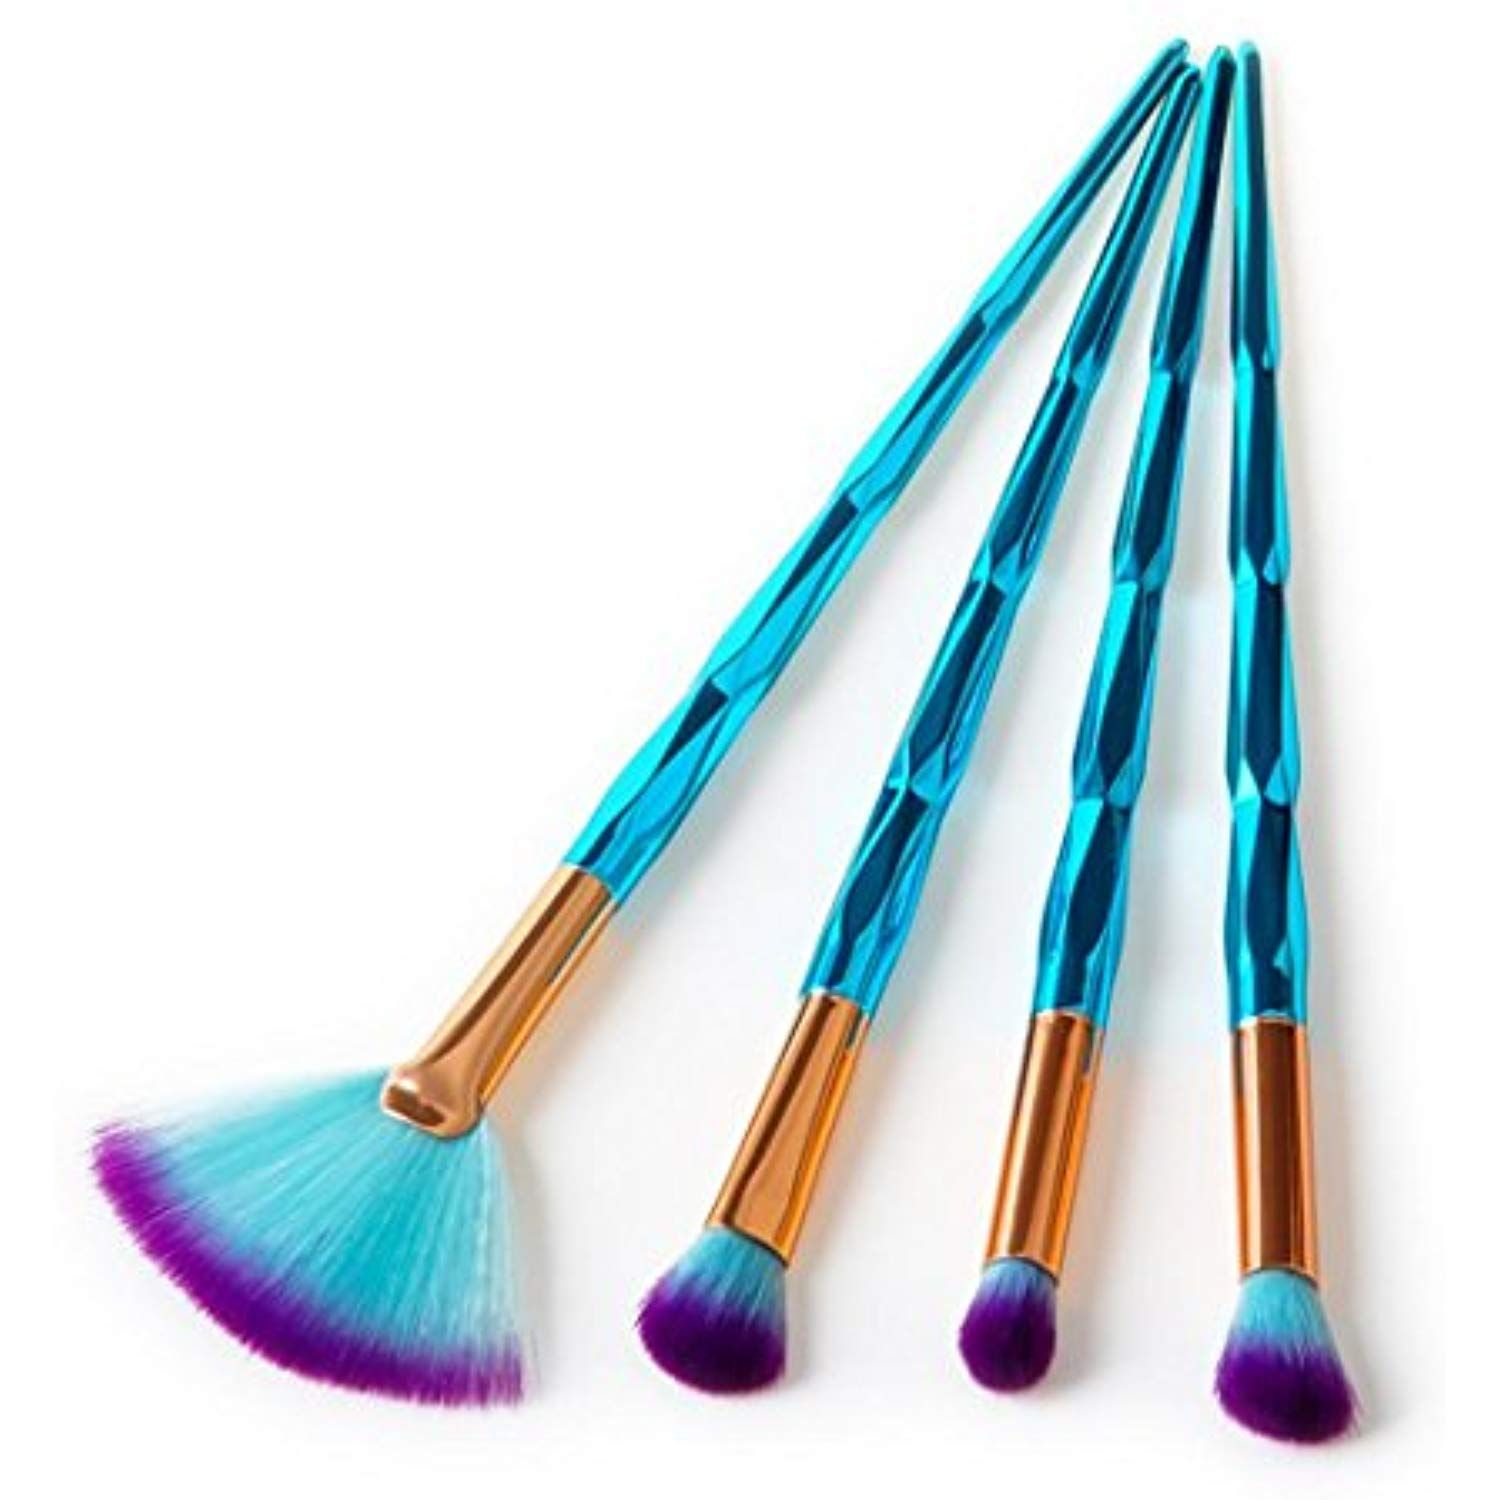 4PCs Toiletry Make up Brushes with Glitters Handle Set